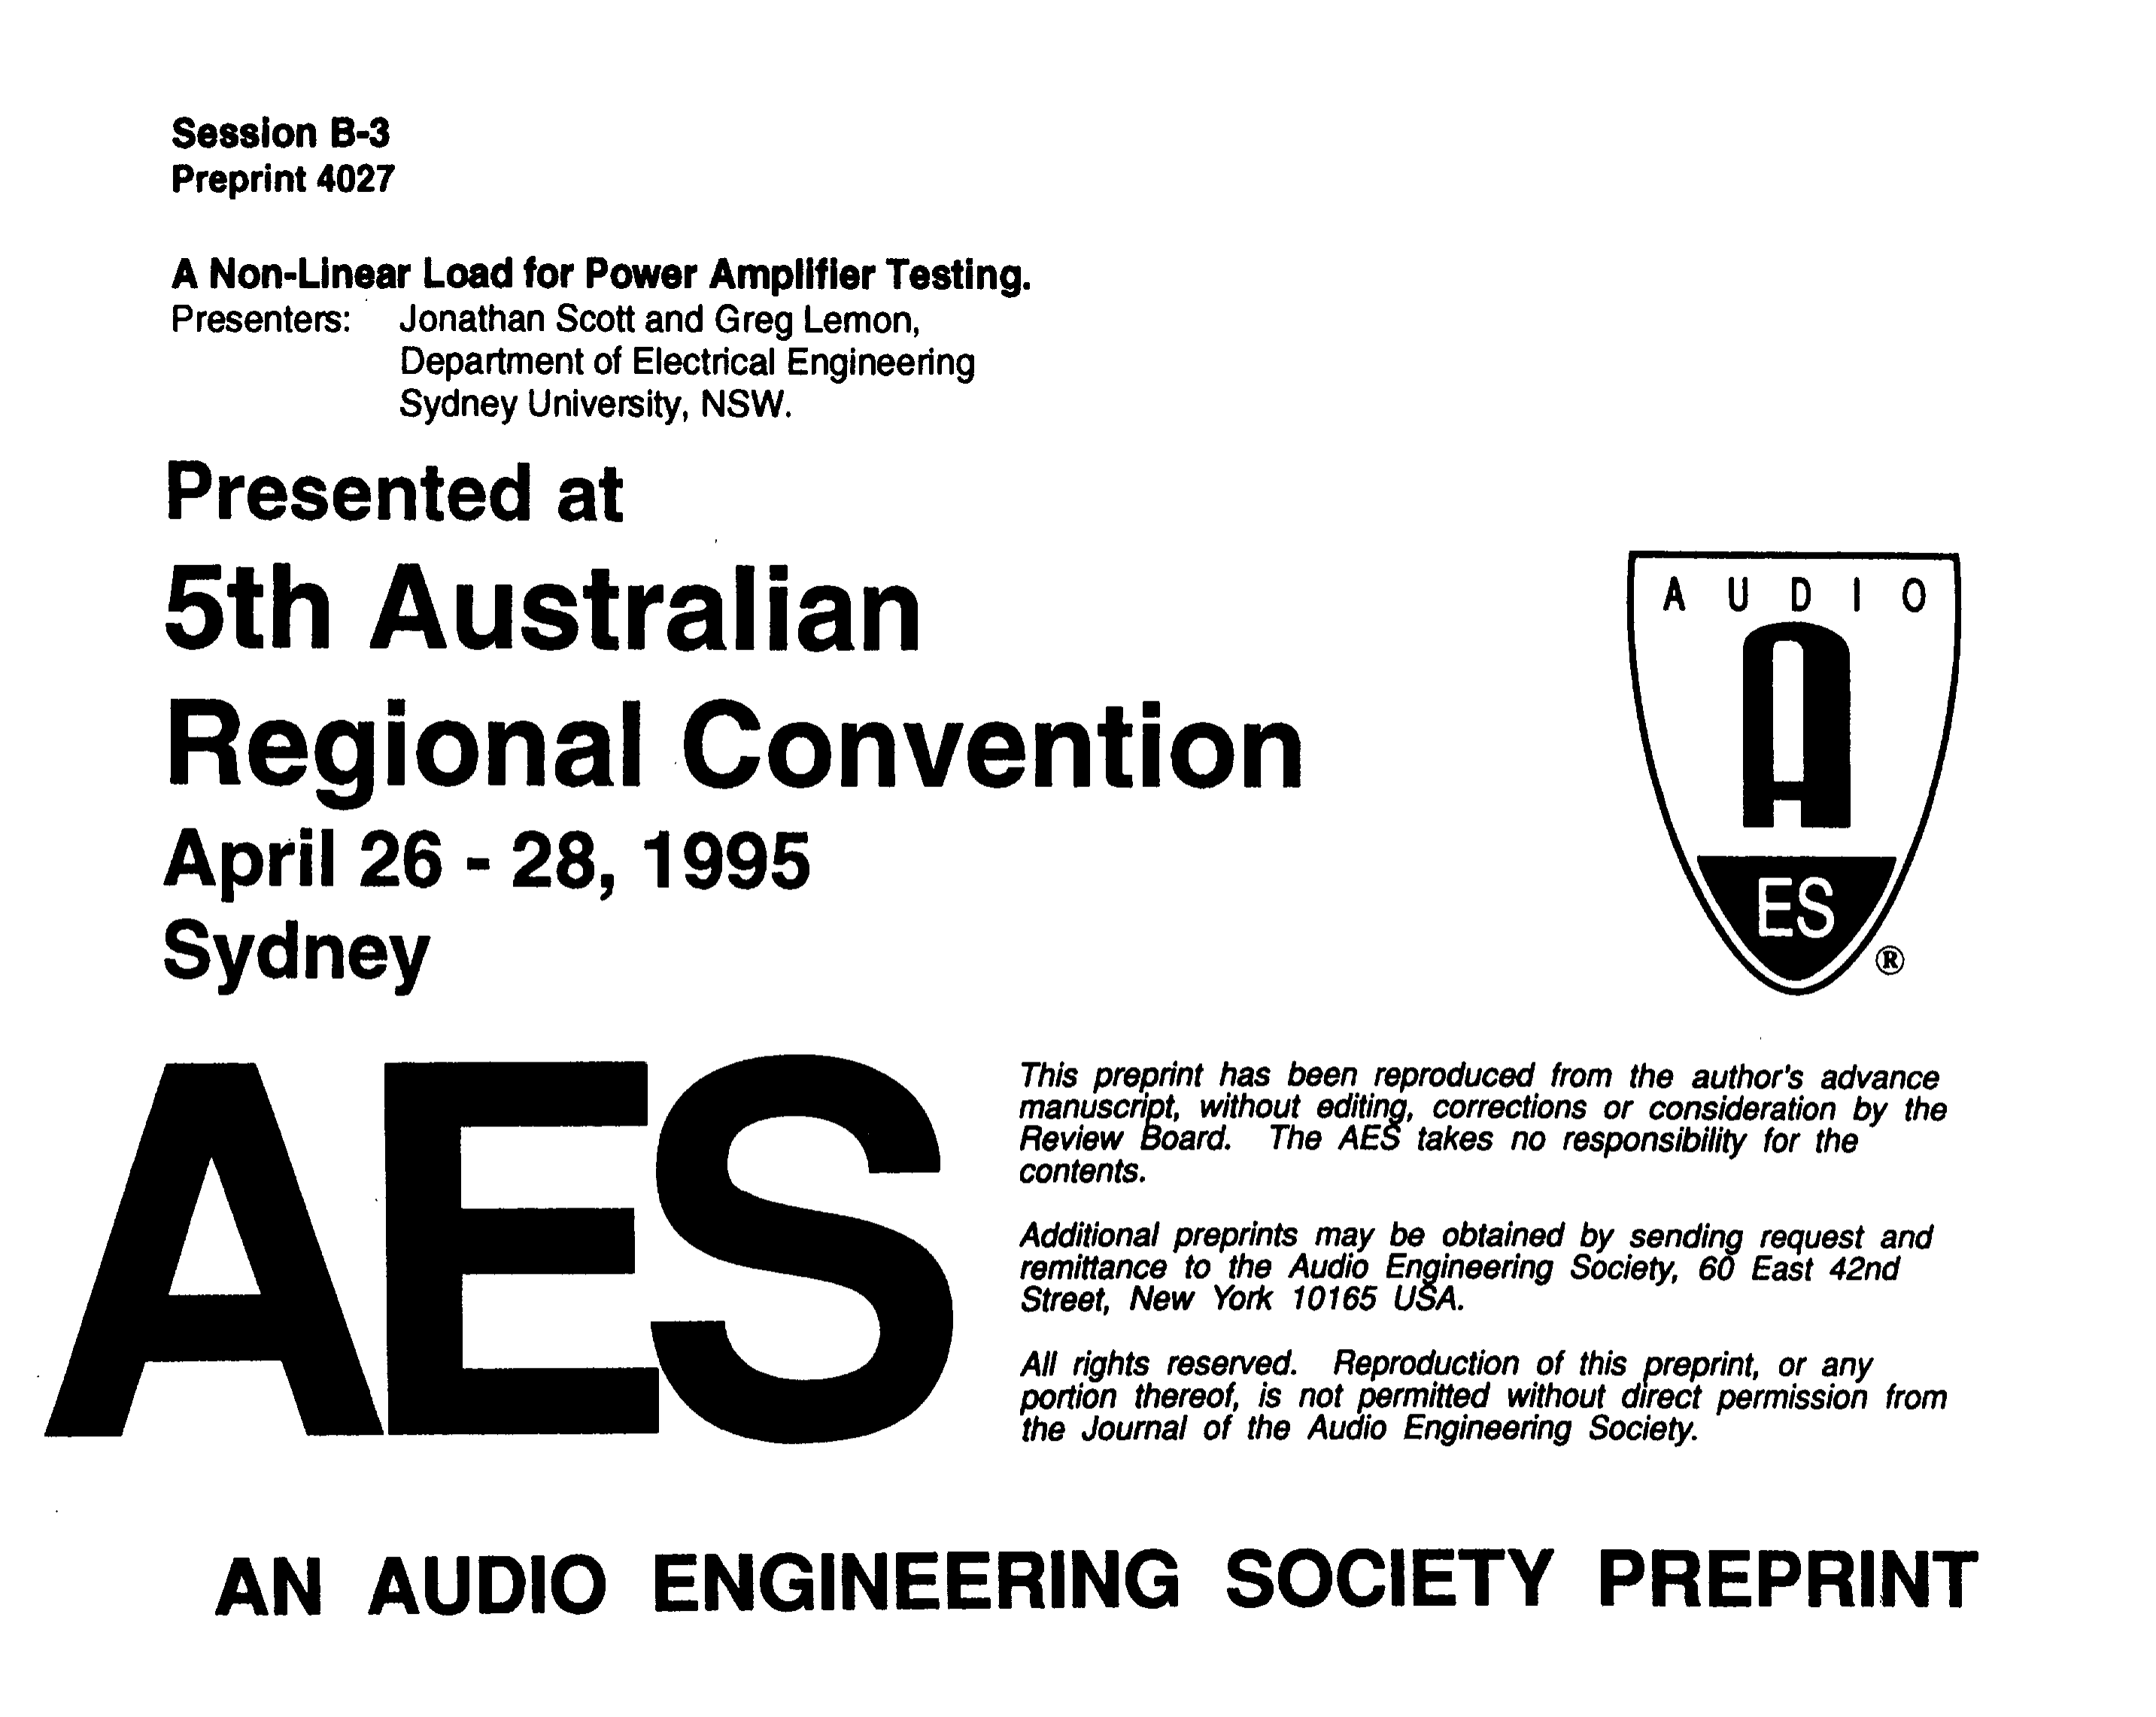 AES E-Library » A Non-Linear Load for Power Amplifier Testing